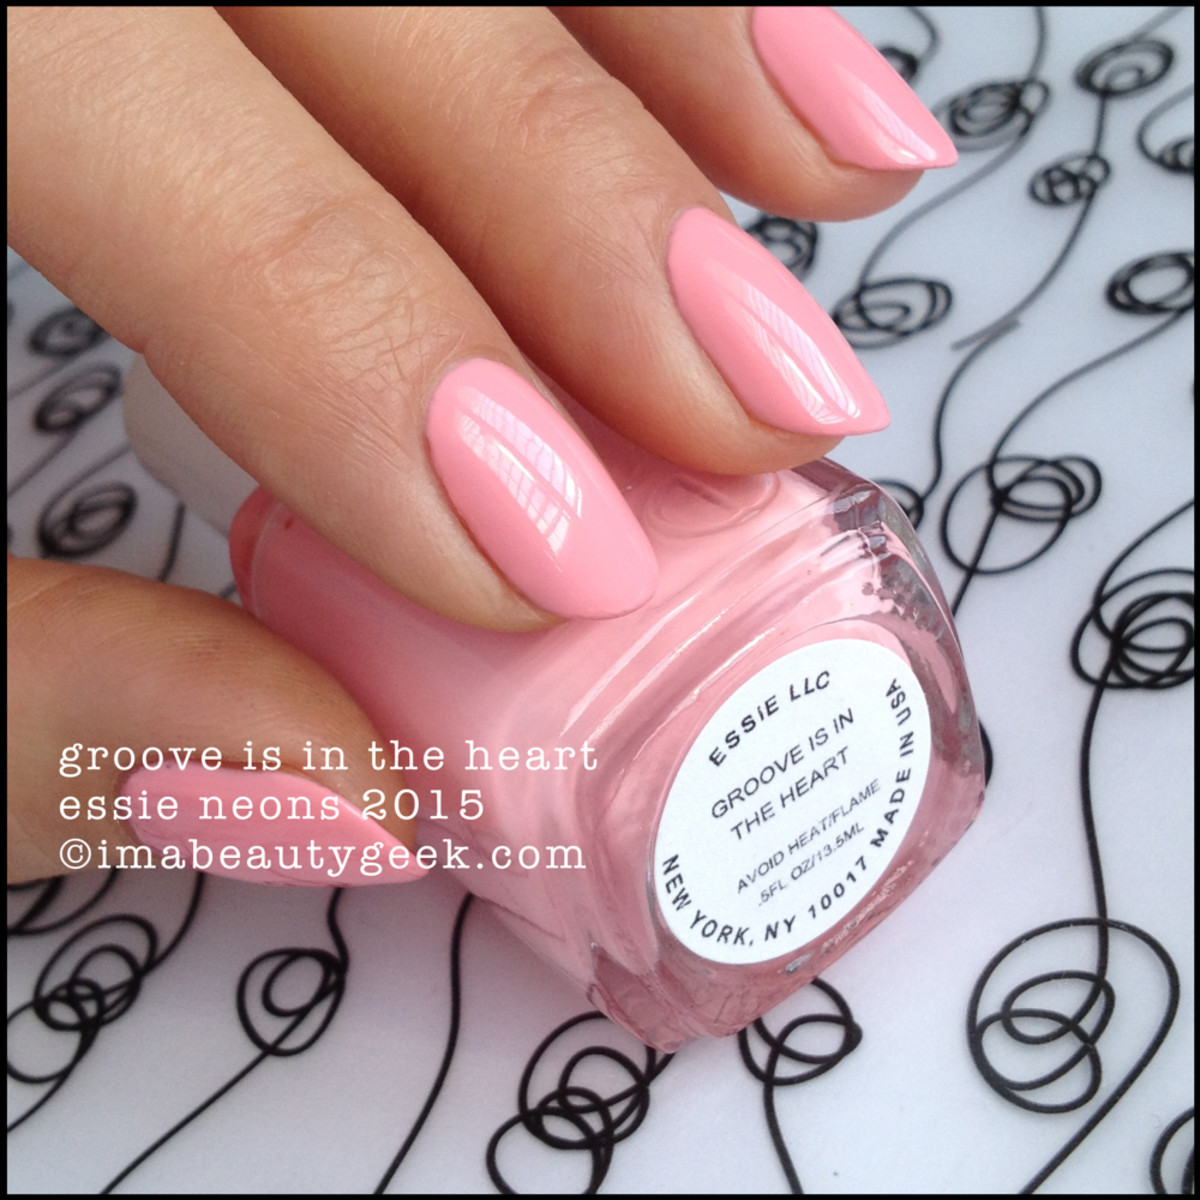 Essie Groove is in the Heart Essie Neon Collection 2015